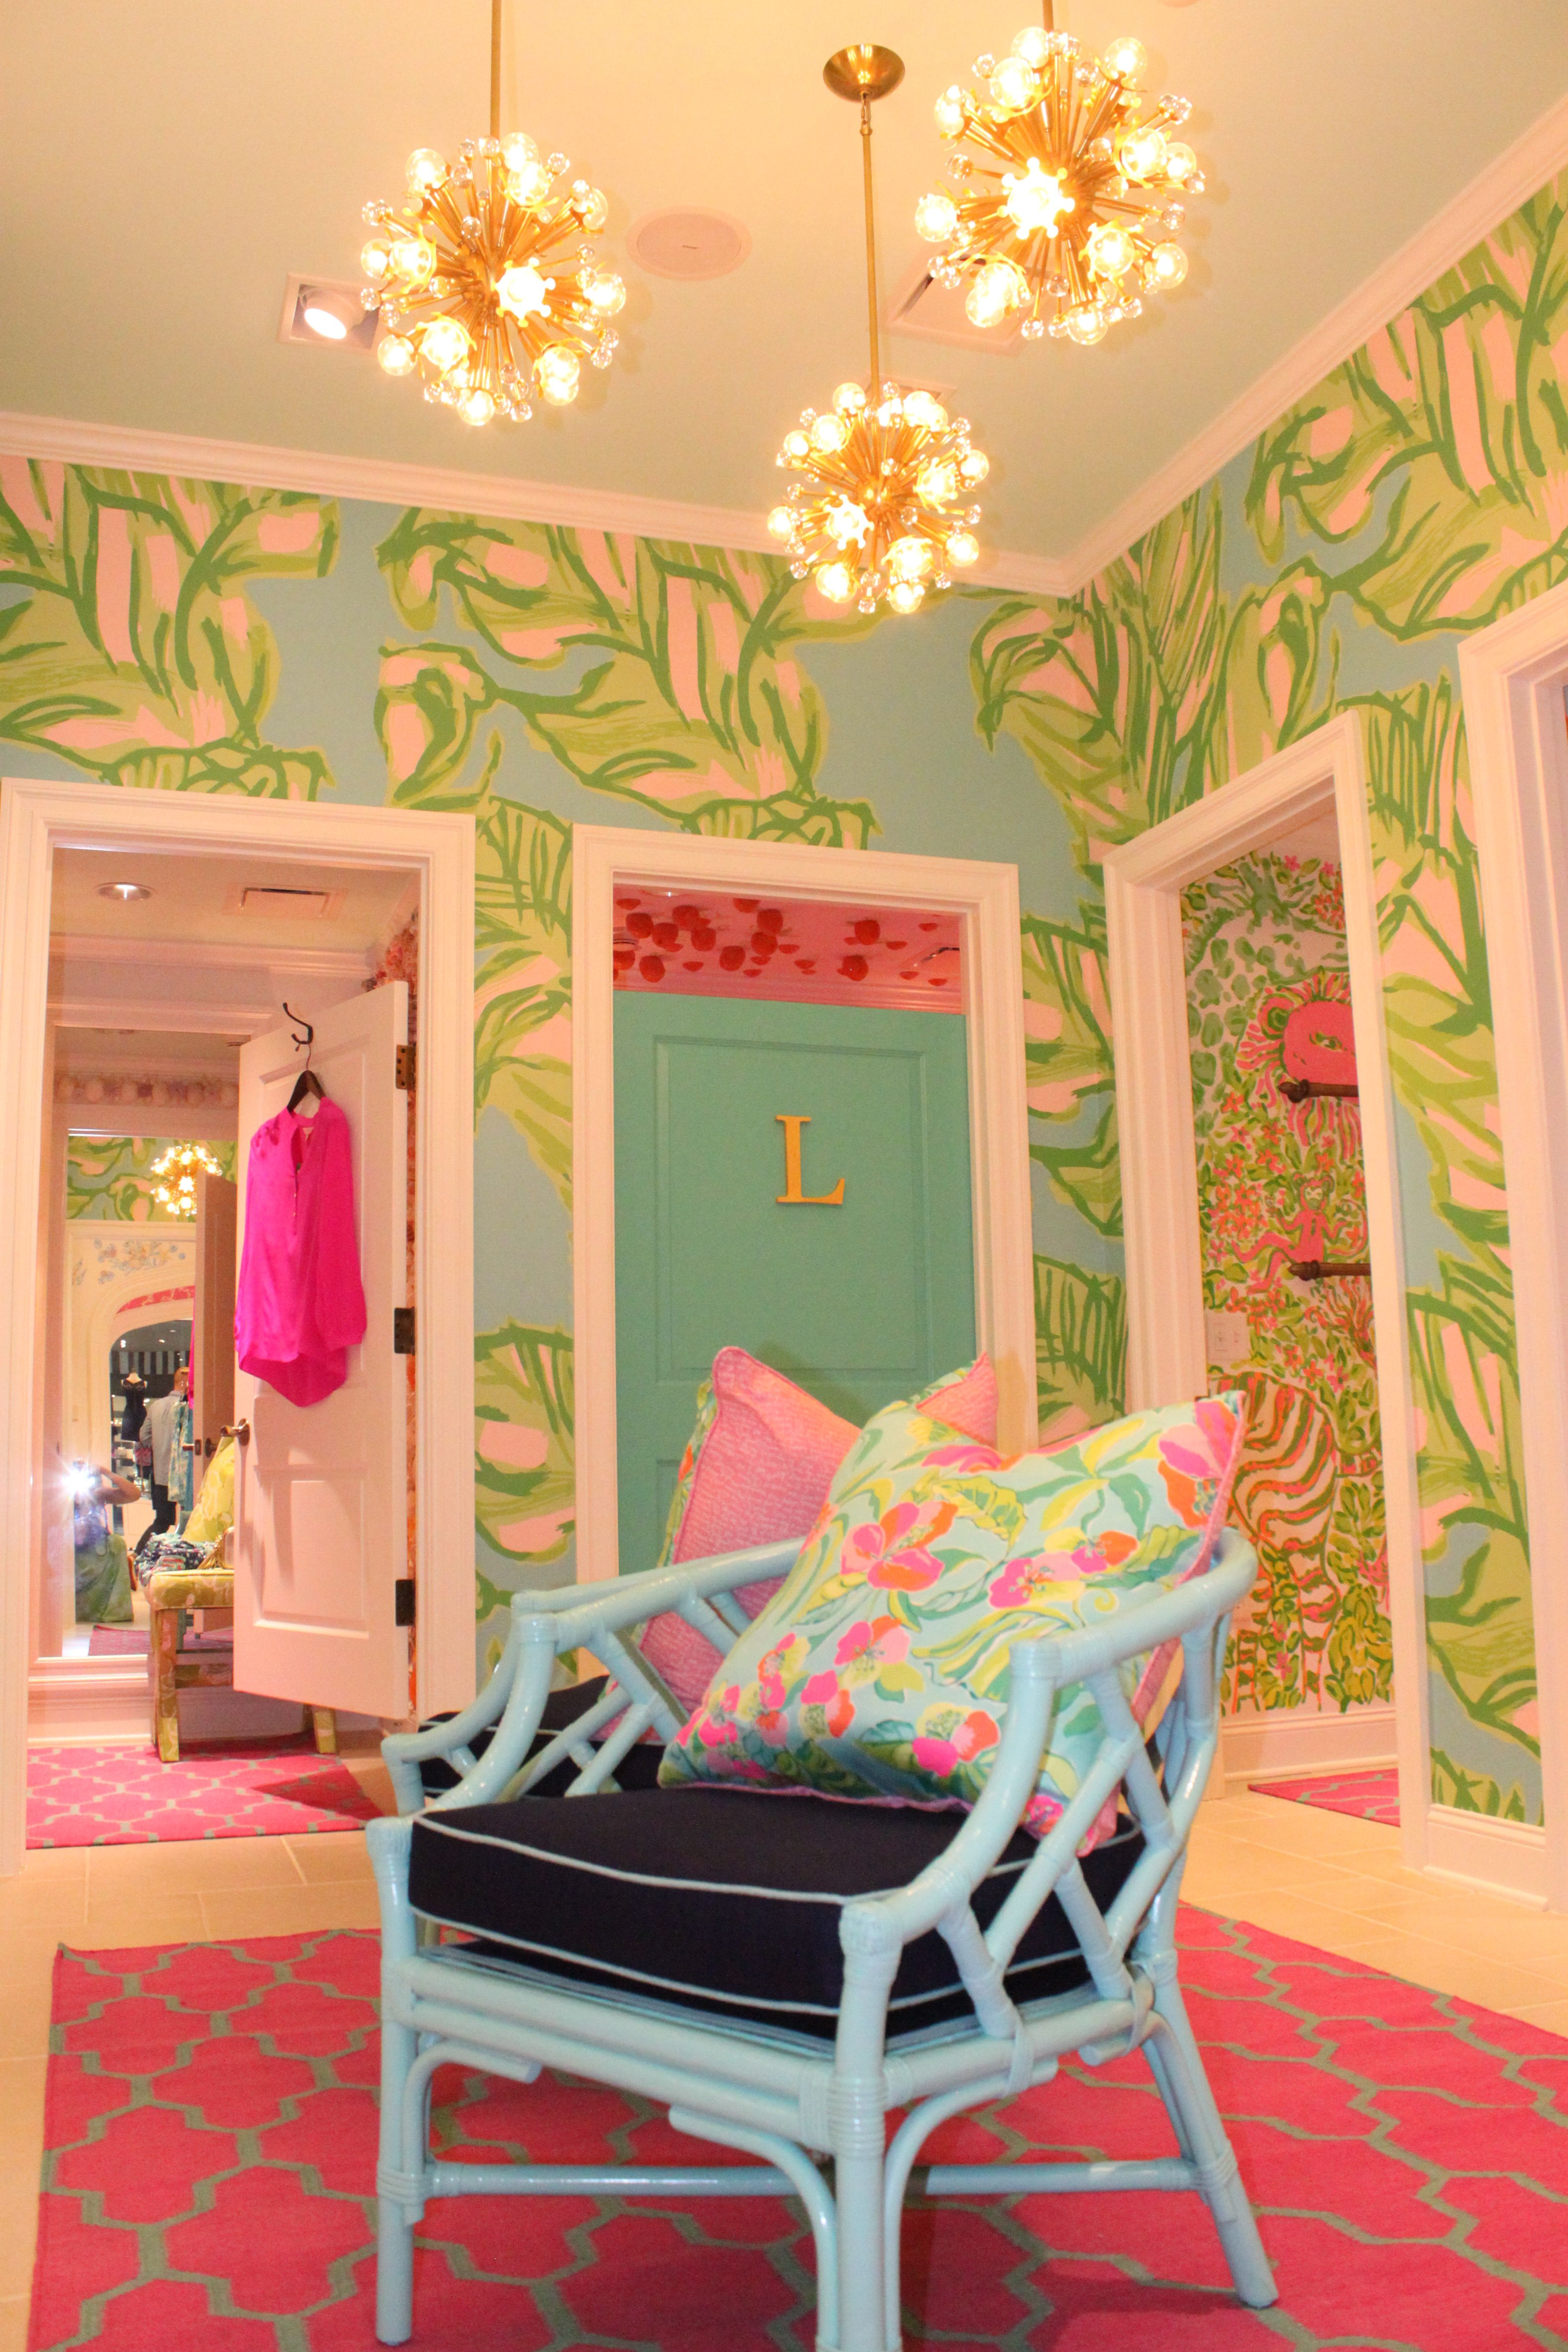 dressing rooms at lilly pulitzer westchester lilly retail